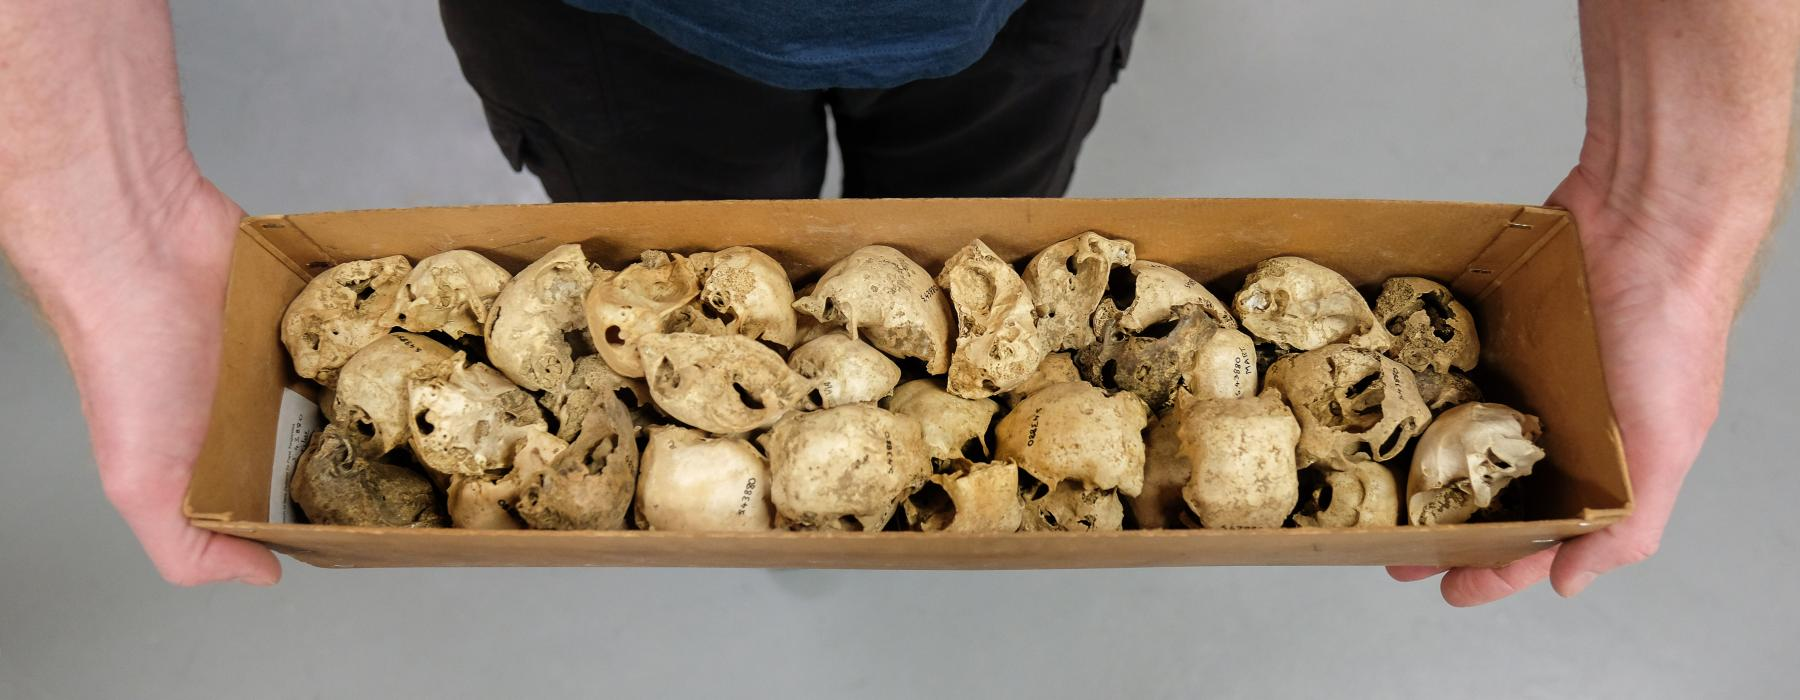 Two hands holding a box of moa skulls